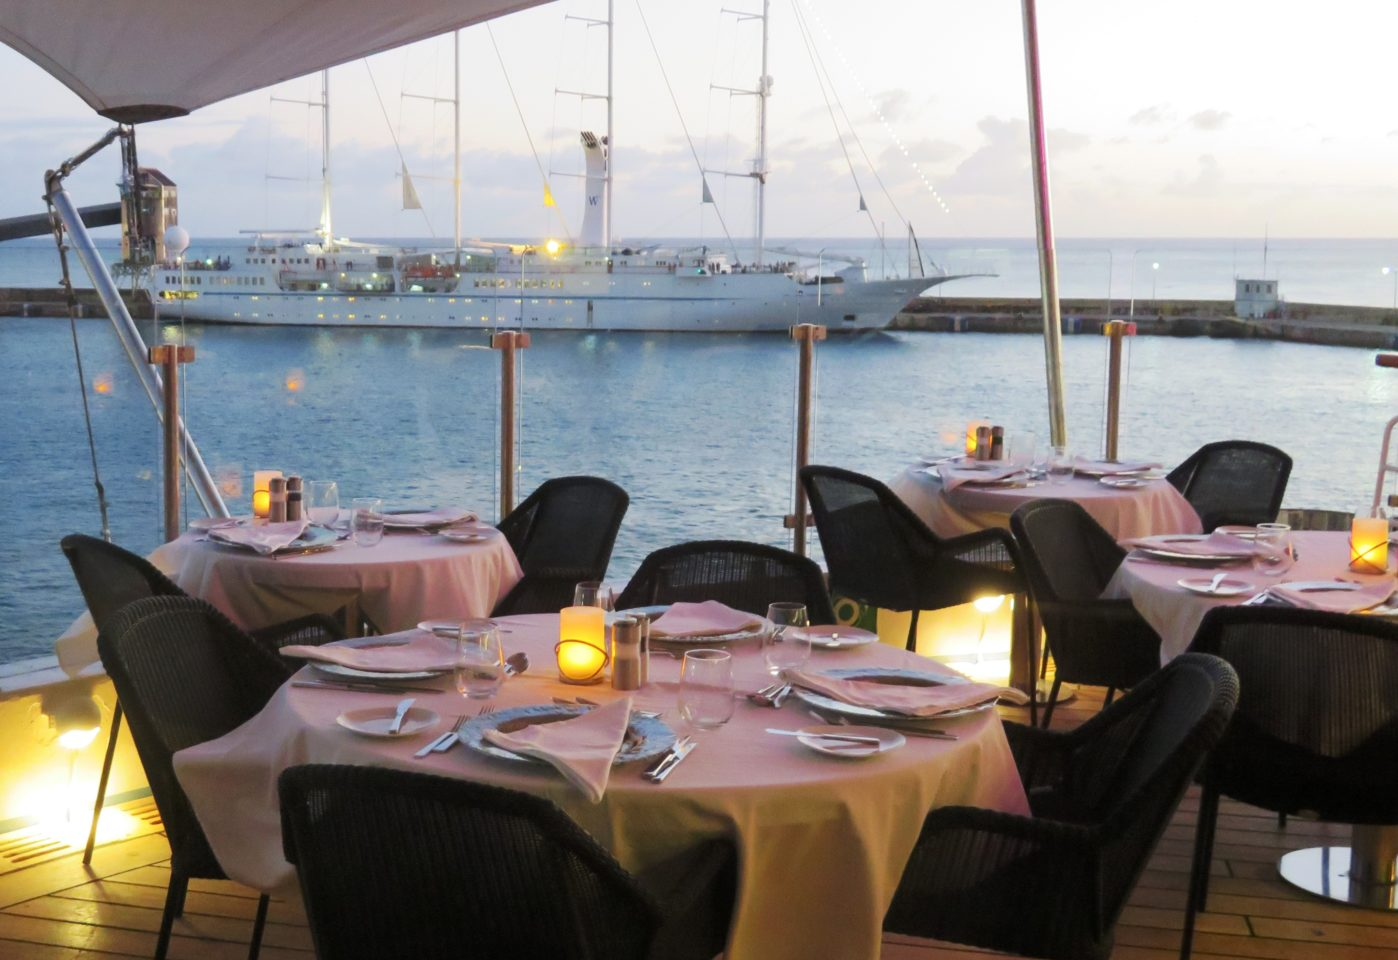 Windstar Cruises Star Legend ~ our table with its glorious views and sea breezes awaits us in paradise